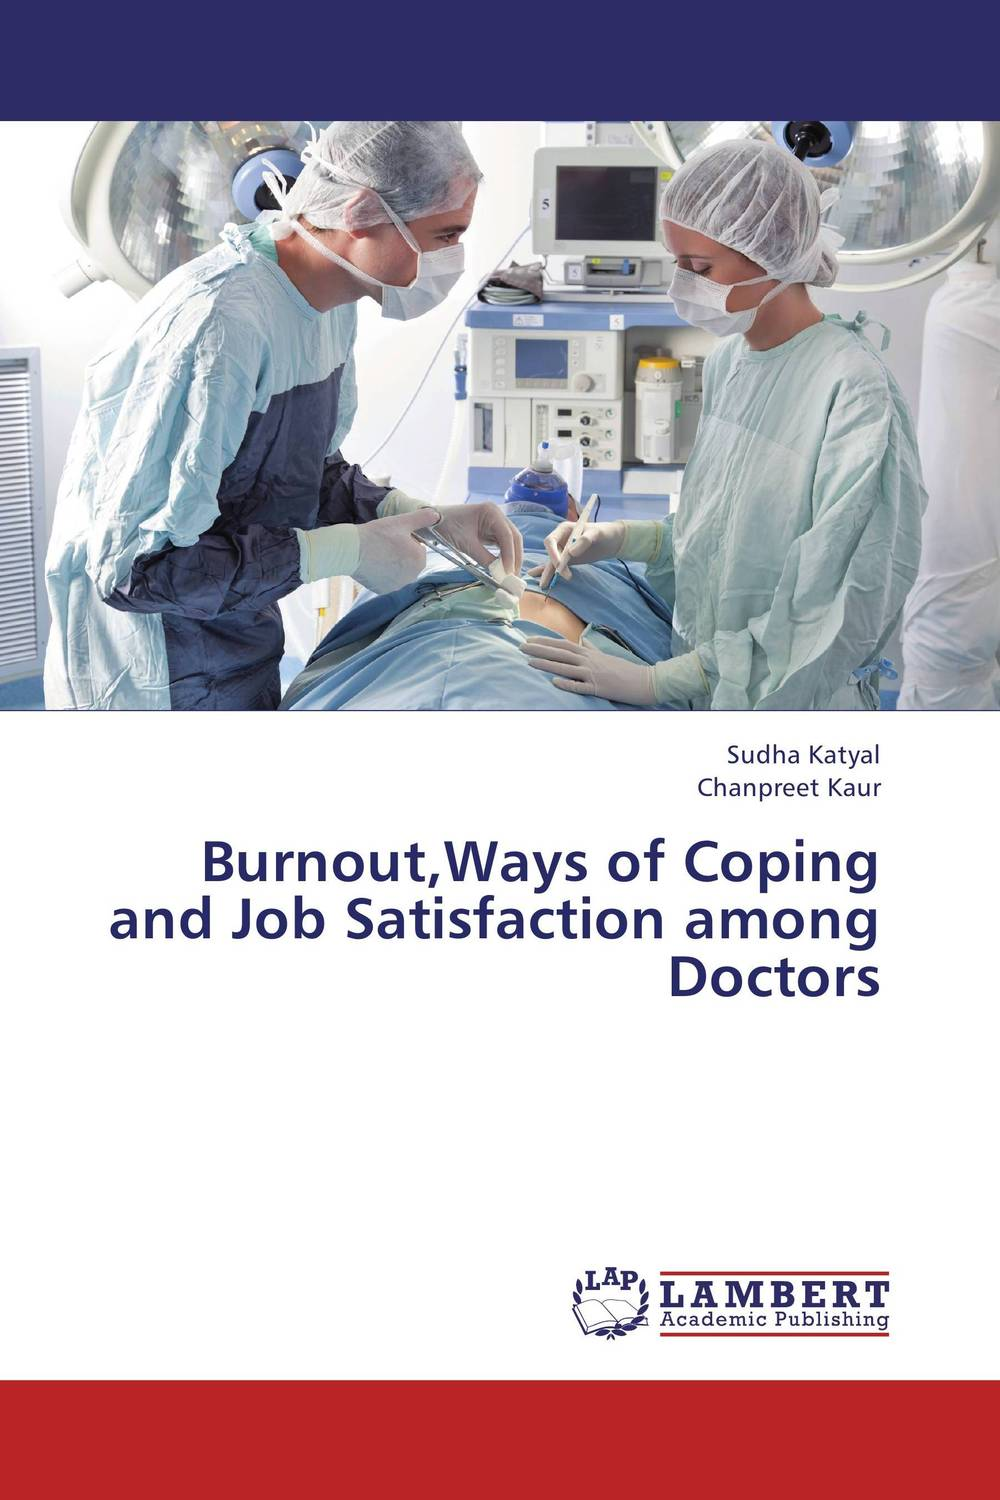 Burnout,Ways of Coping and Job Satisfaction among Doctors seduced by death – doctors patients